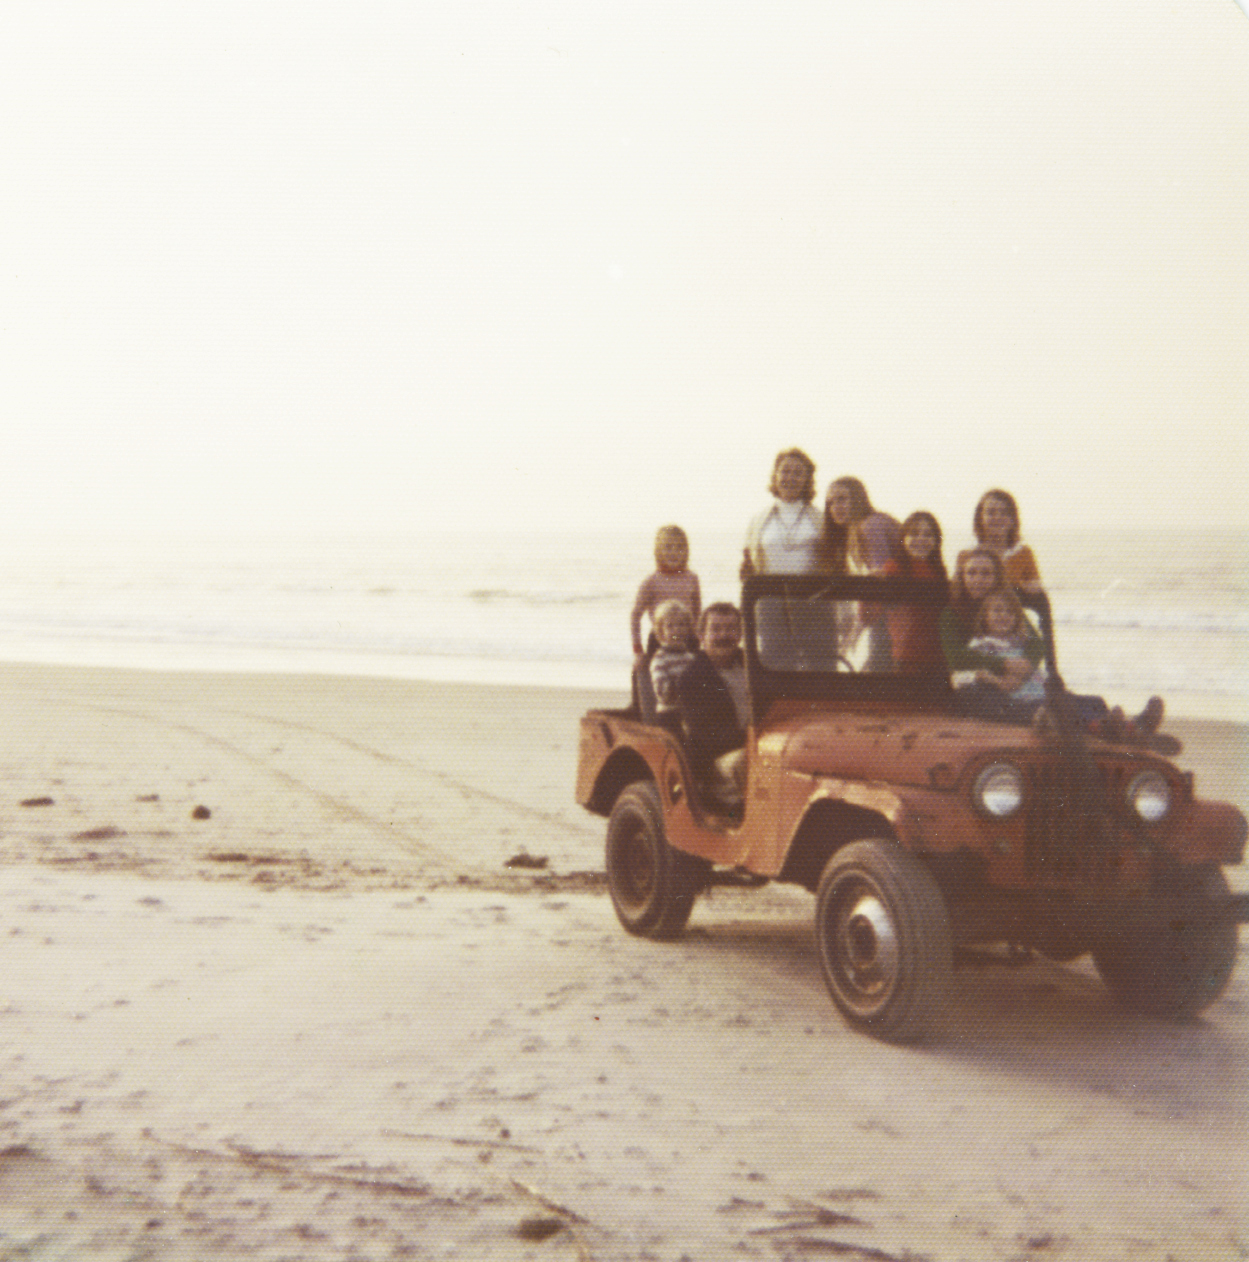 Marshall's dad, Neil, drives the family on front beach jaunts in their Willys jeep.